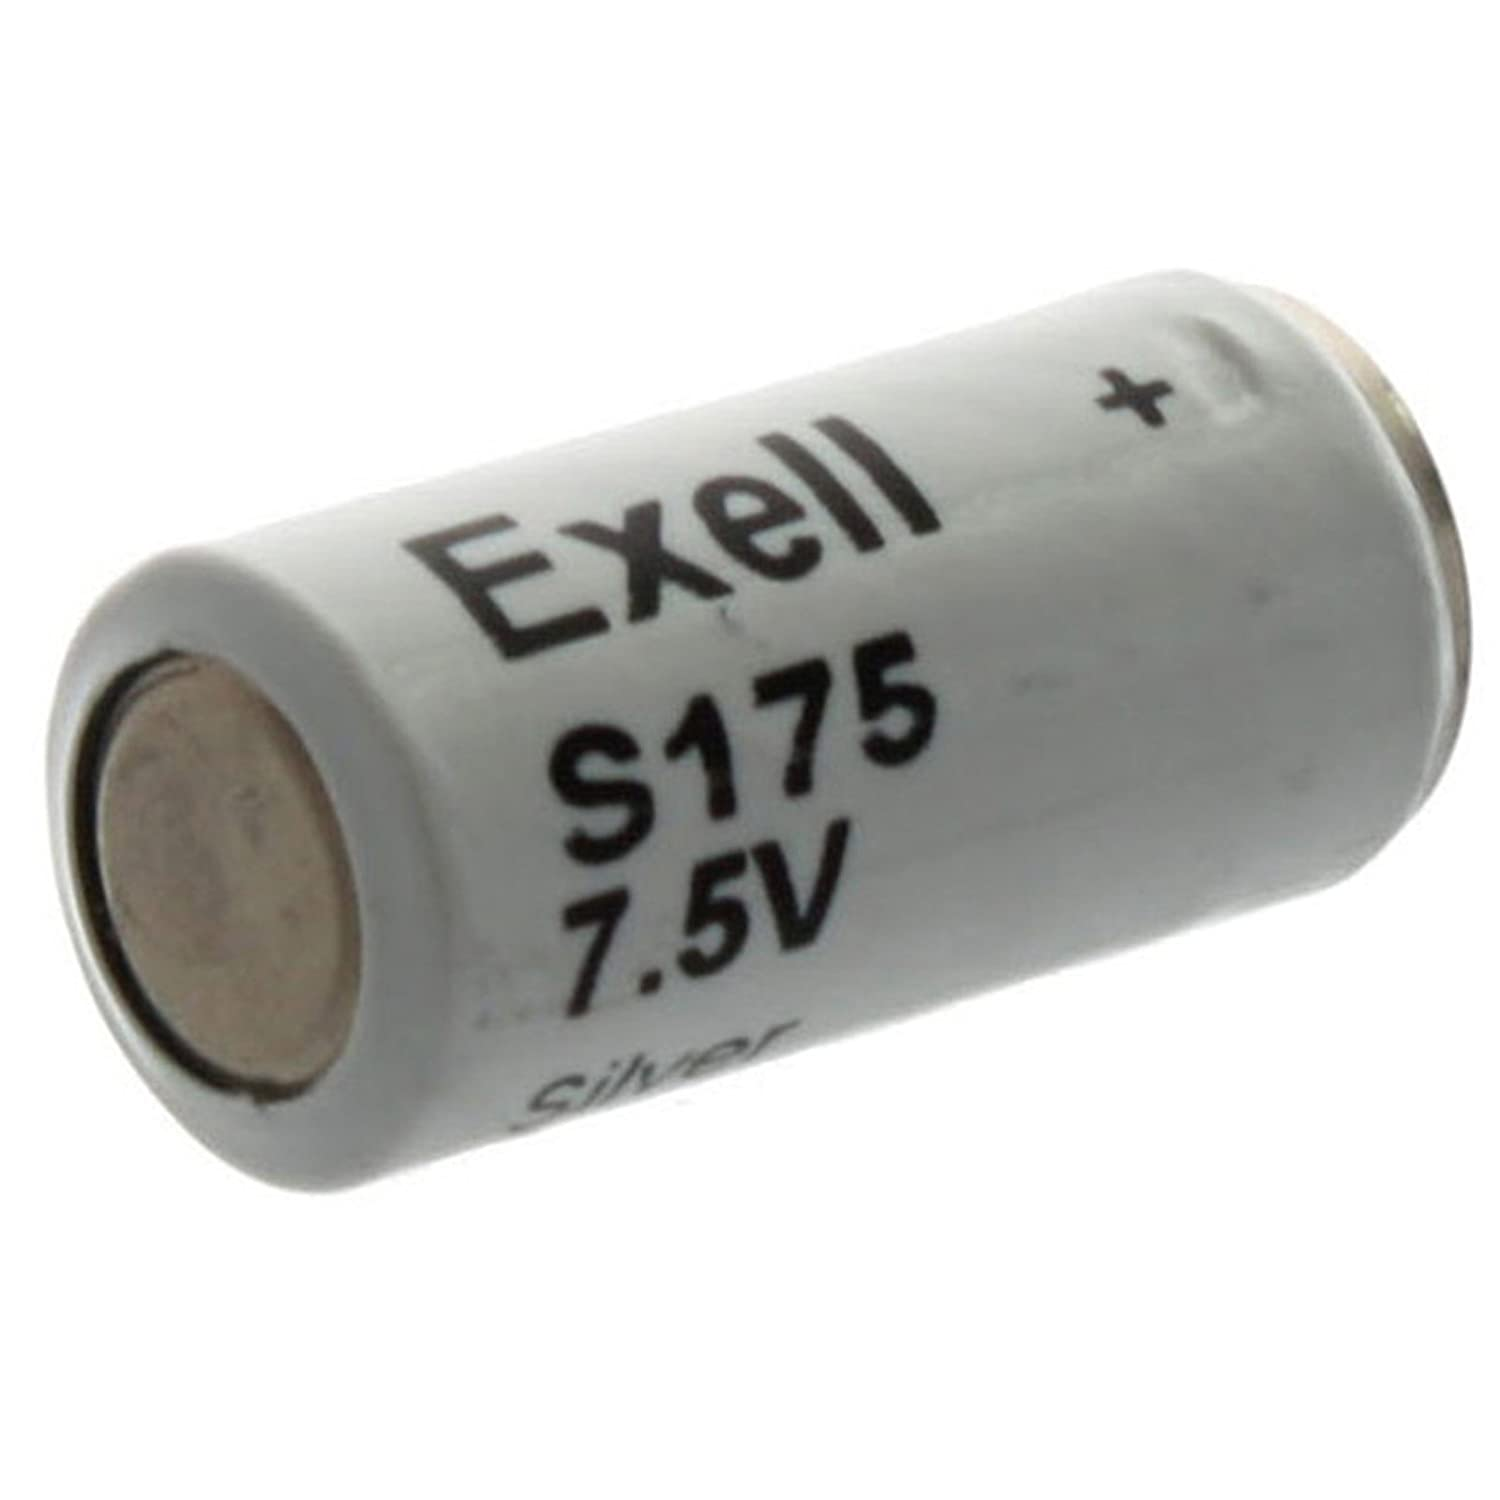 The S175 is a battery replacement for the NEDA 1501M battery